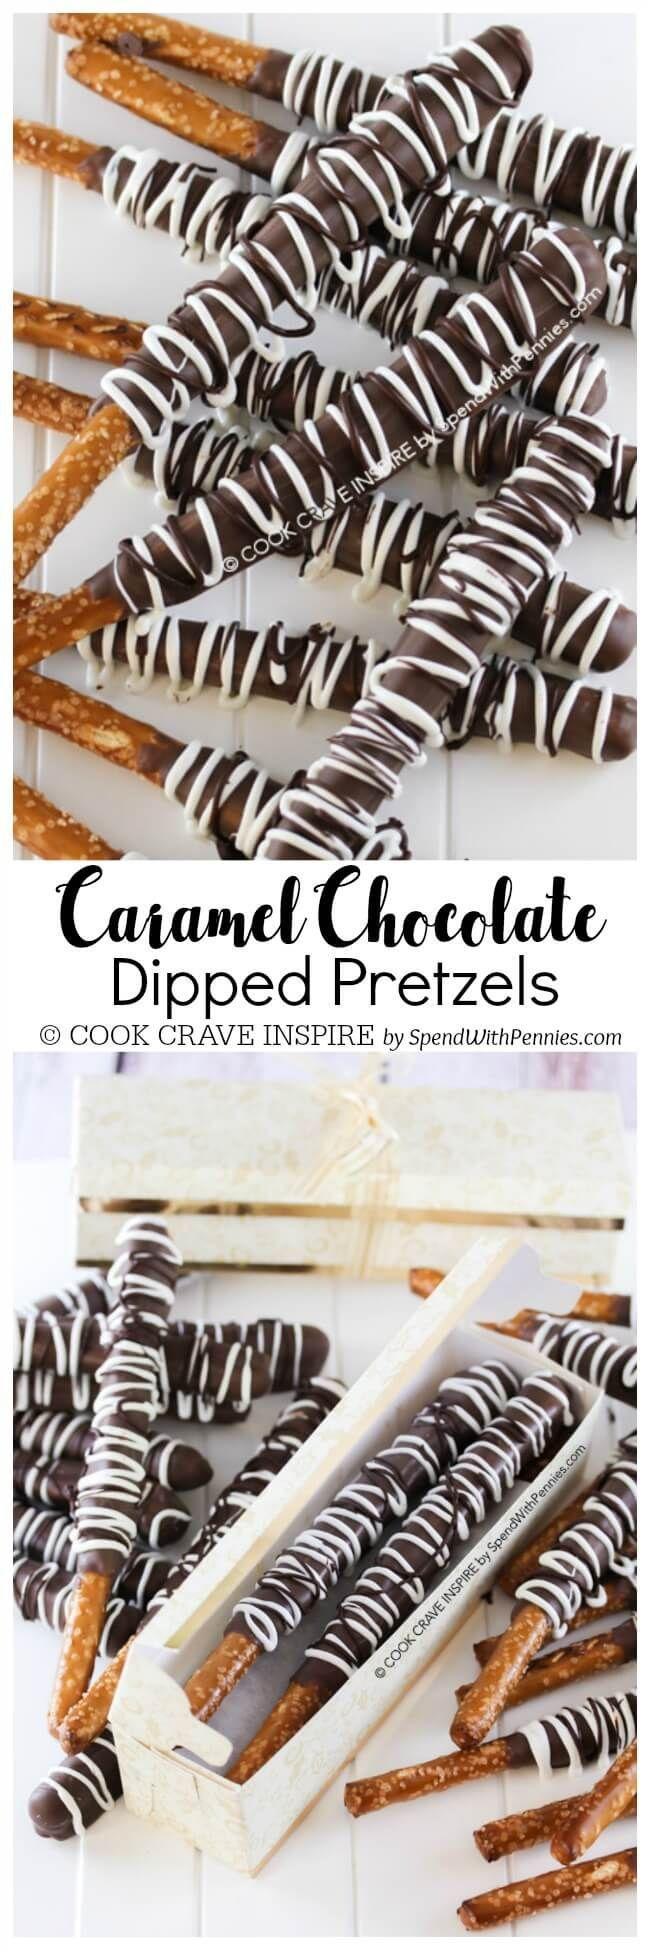 This Caramel Chocolate Covered Pretzels recipe is the perfect ...